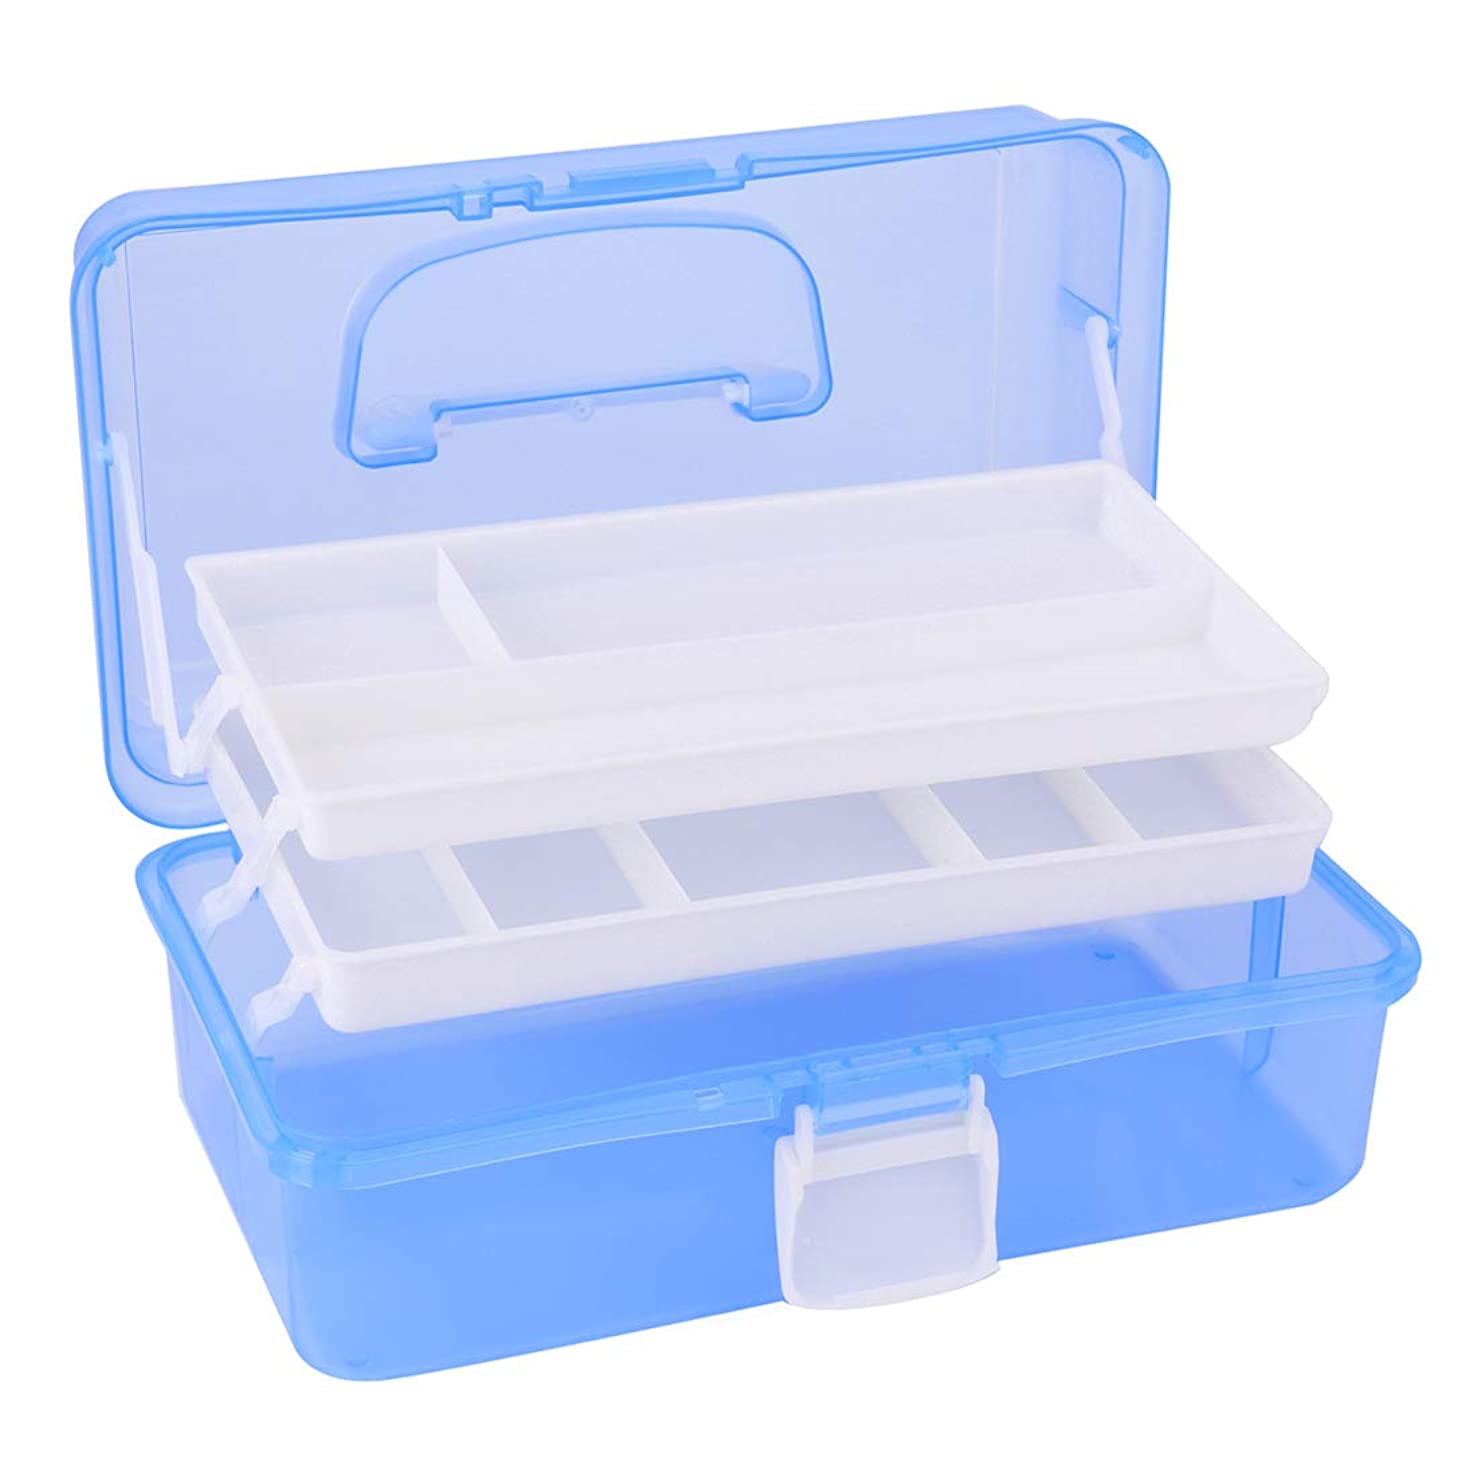 Tosnail Multipurpose Plastic Art Craft Supply Storage Case Storage Container with Two Trays (Blue)